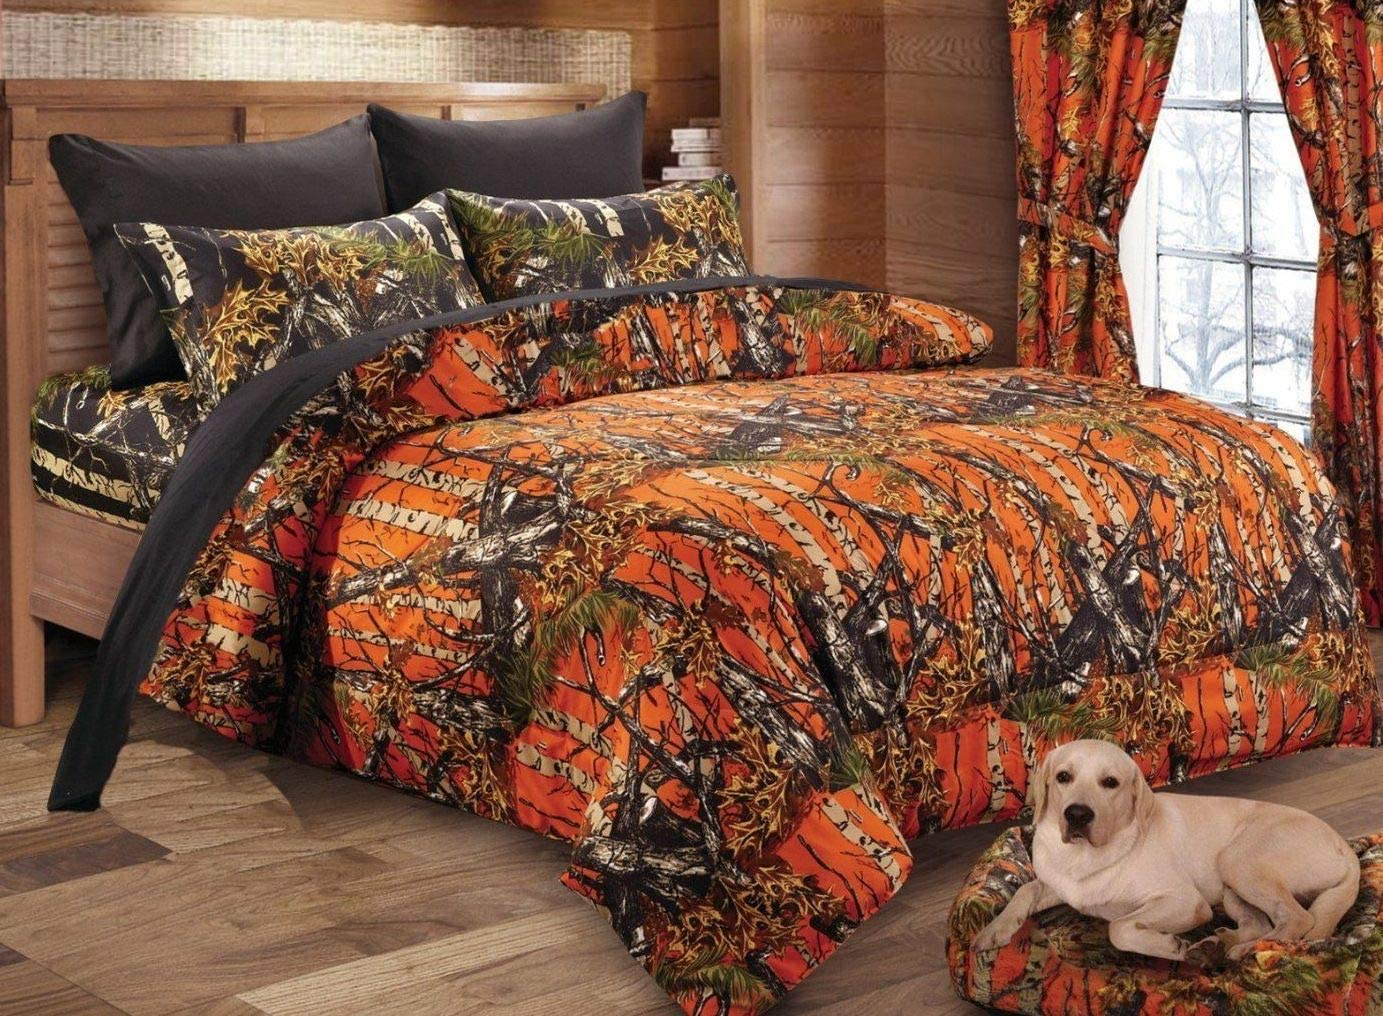 Regal Comfort The Woods Orange Camouflage Premium Luxury Queen Comforter Camo Bedding Set for Hunters Cabin or Rustic Lodge Teens Boys and Girls